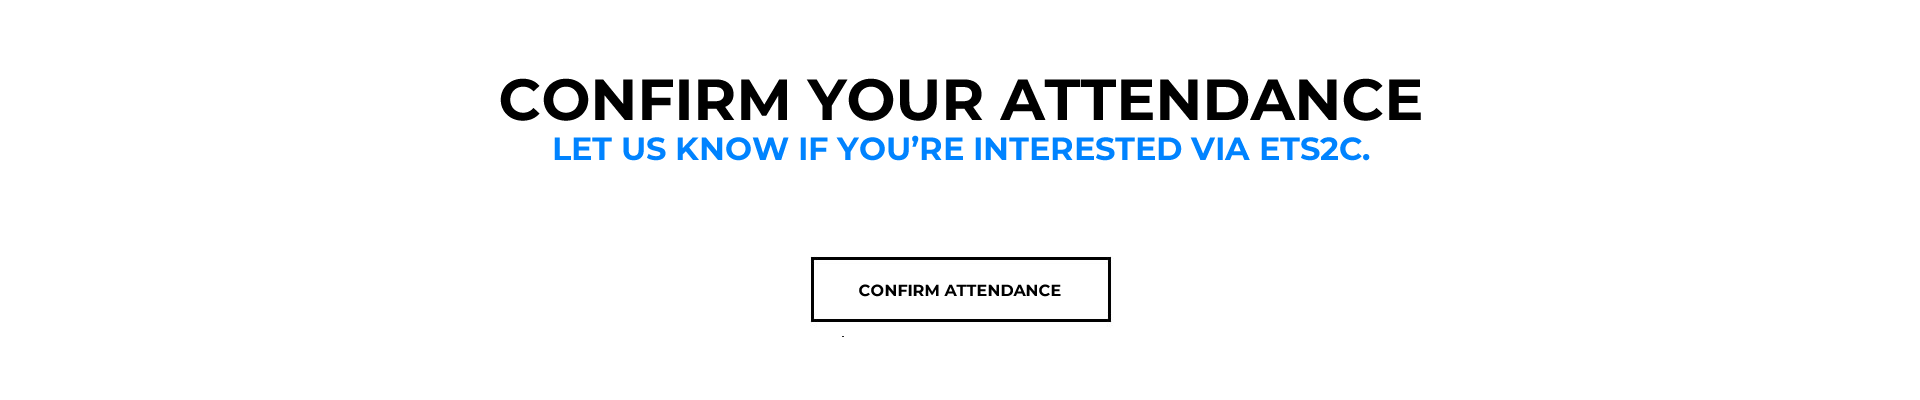 confirm_attendance.png